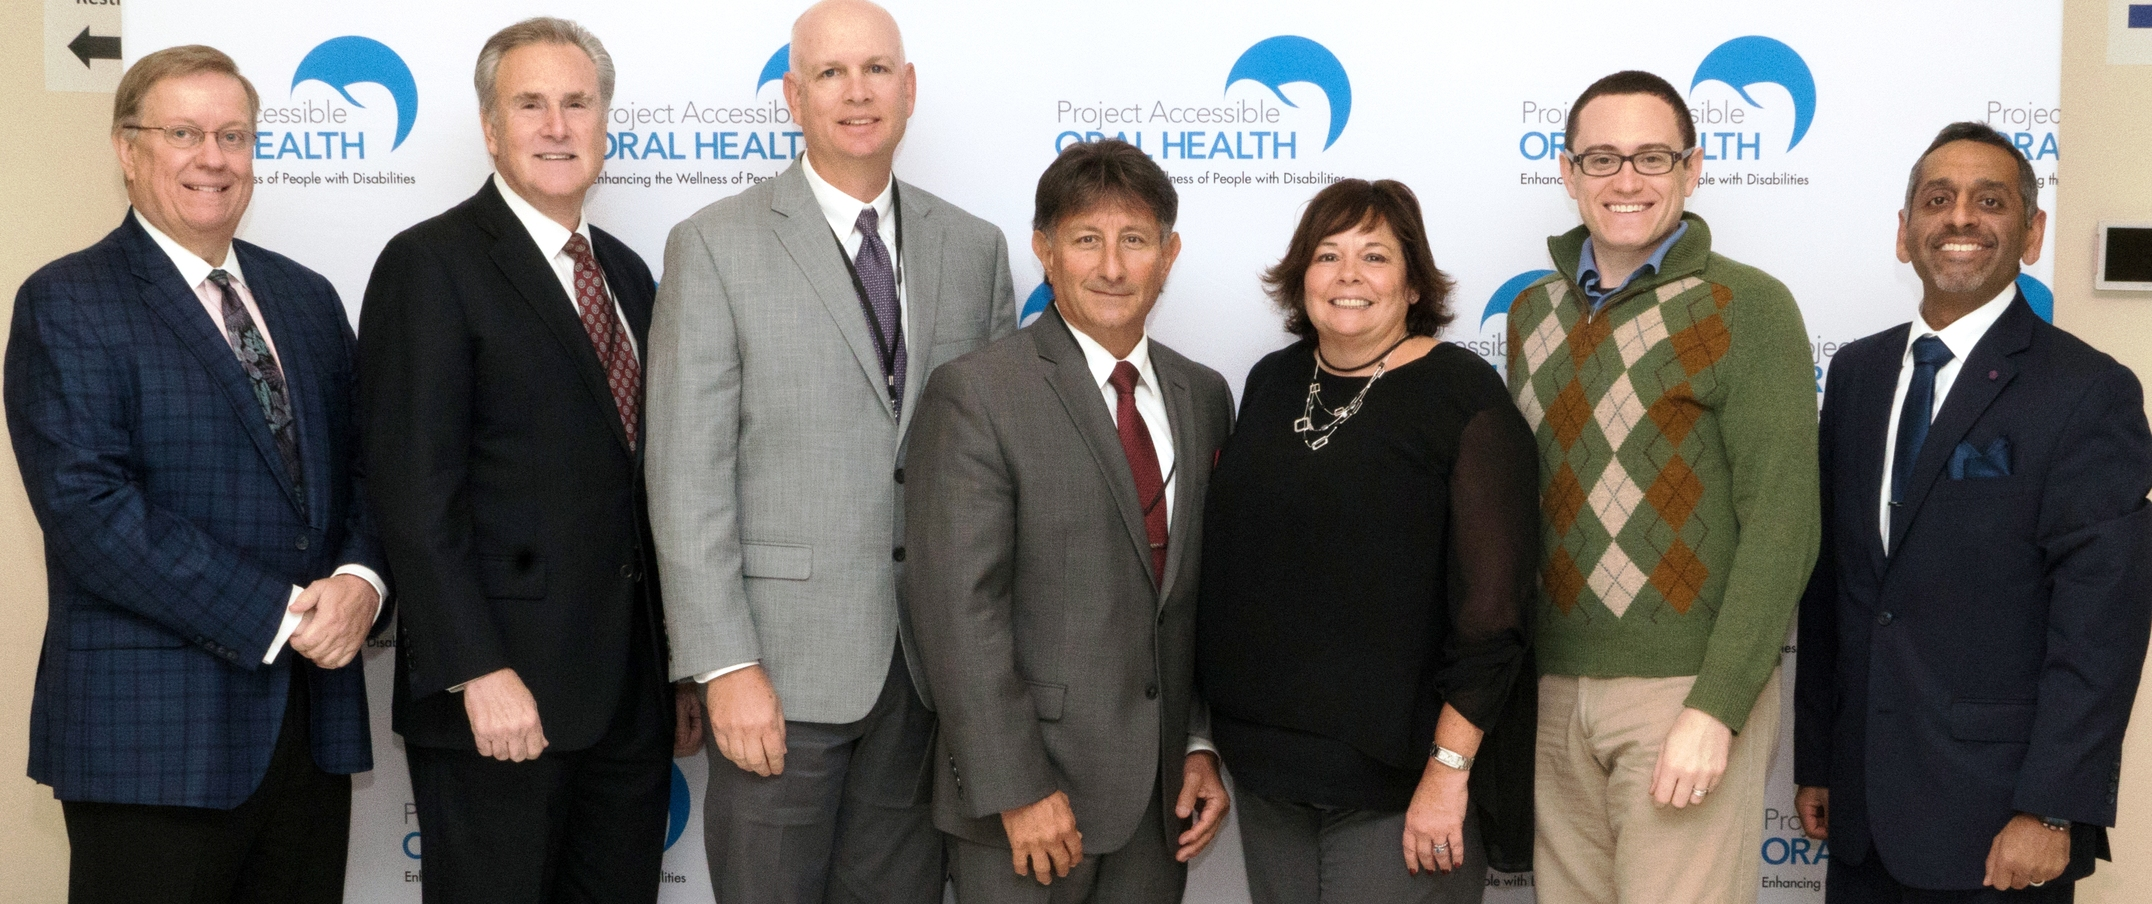 [L-R] Special Care Dentistry Association leadership gather to support Project Accessible Oral Health: Robert Patterson, Dr. Jeffrey L. Hicks, Dr. Stephen Beestra, Dr. David Miller, Dr. Maureen Perry, Dr. Scott Howell and Dr. Dhru Bhatt.